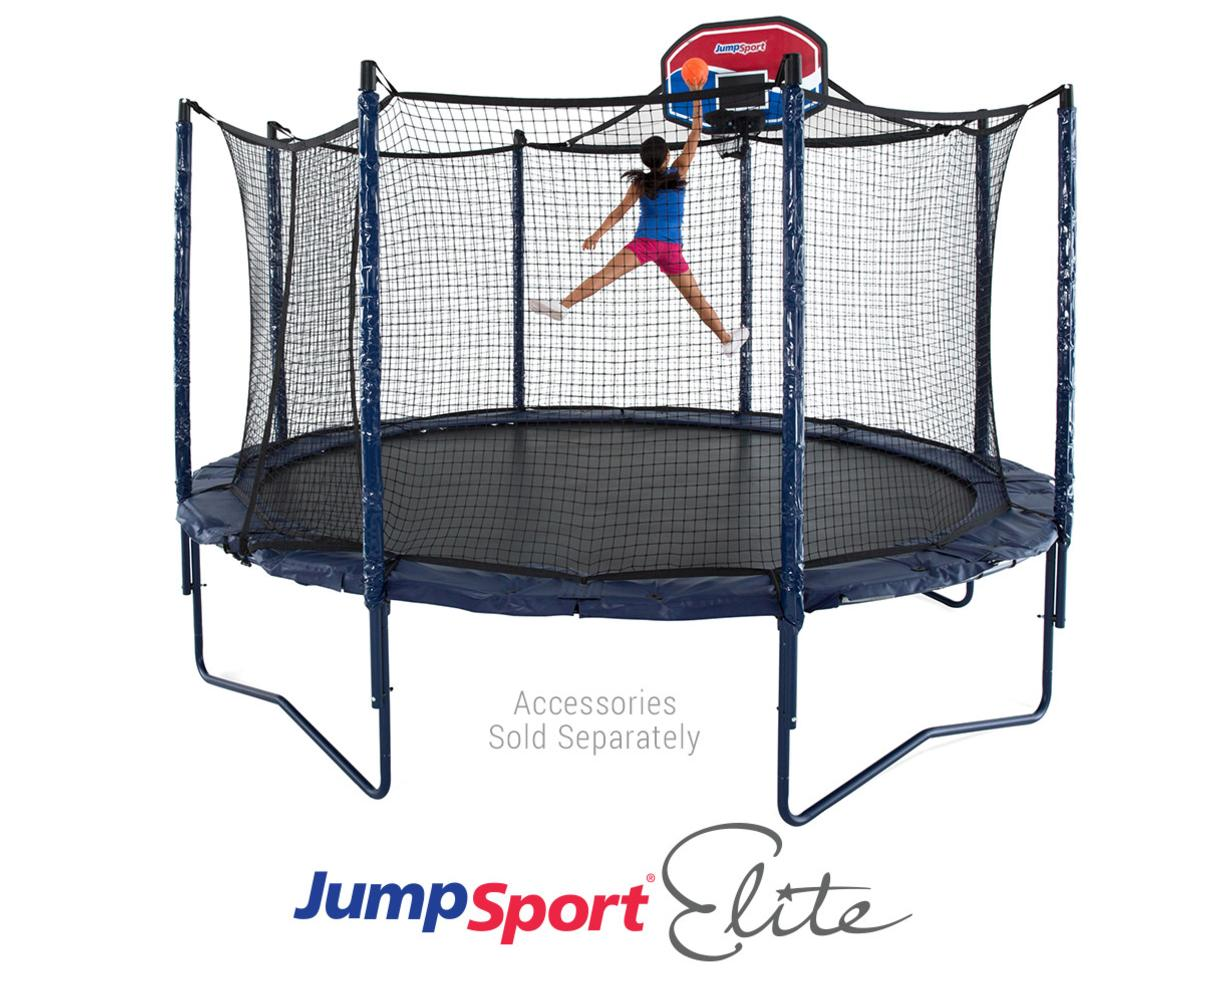 $100 Off Any JumpSport Elite Trampoline System